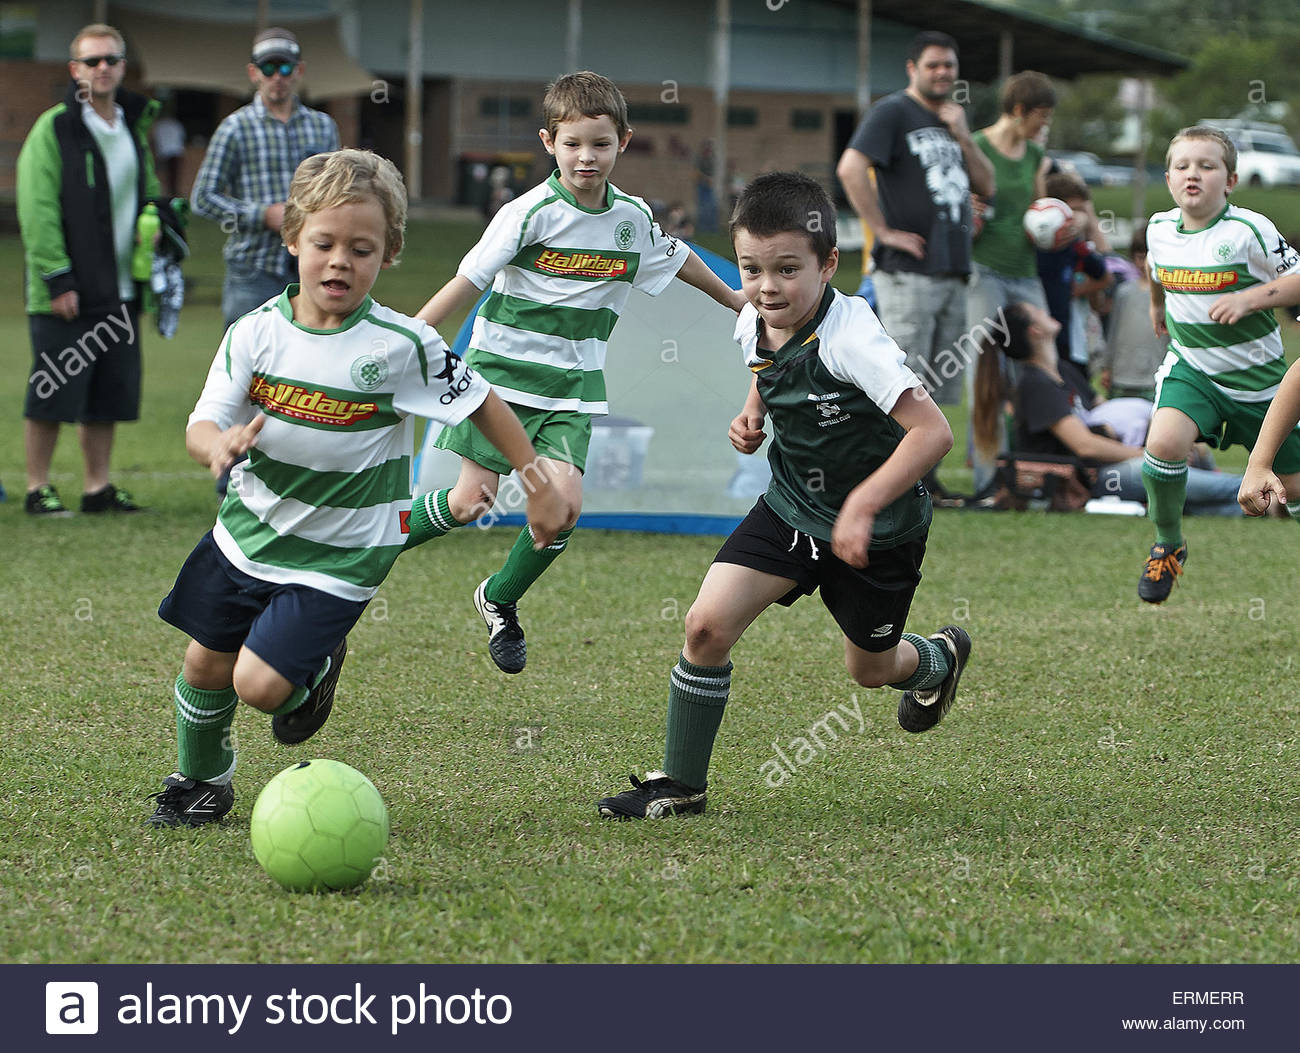 young boys striving to gain possession of the ball during a weekend football match in Nimbin, NSW, Australia. - Stock Image